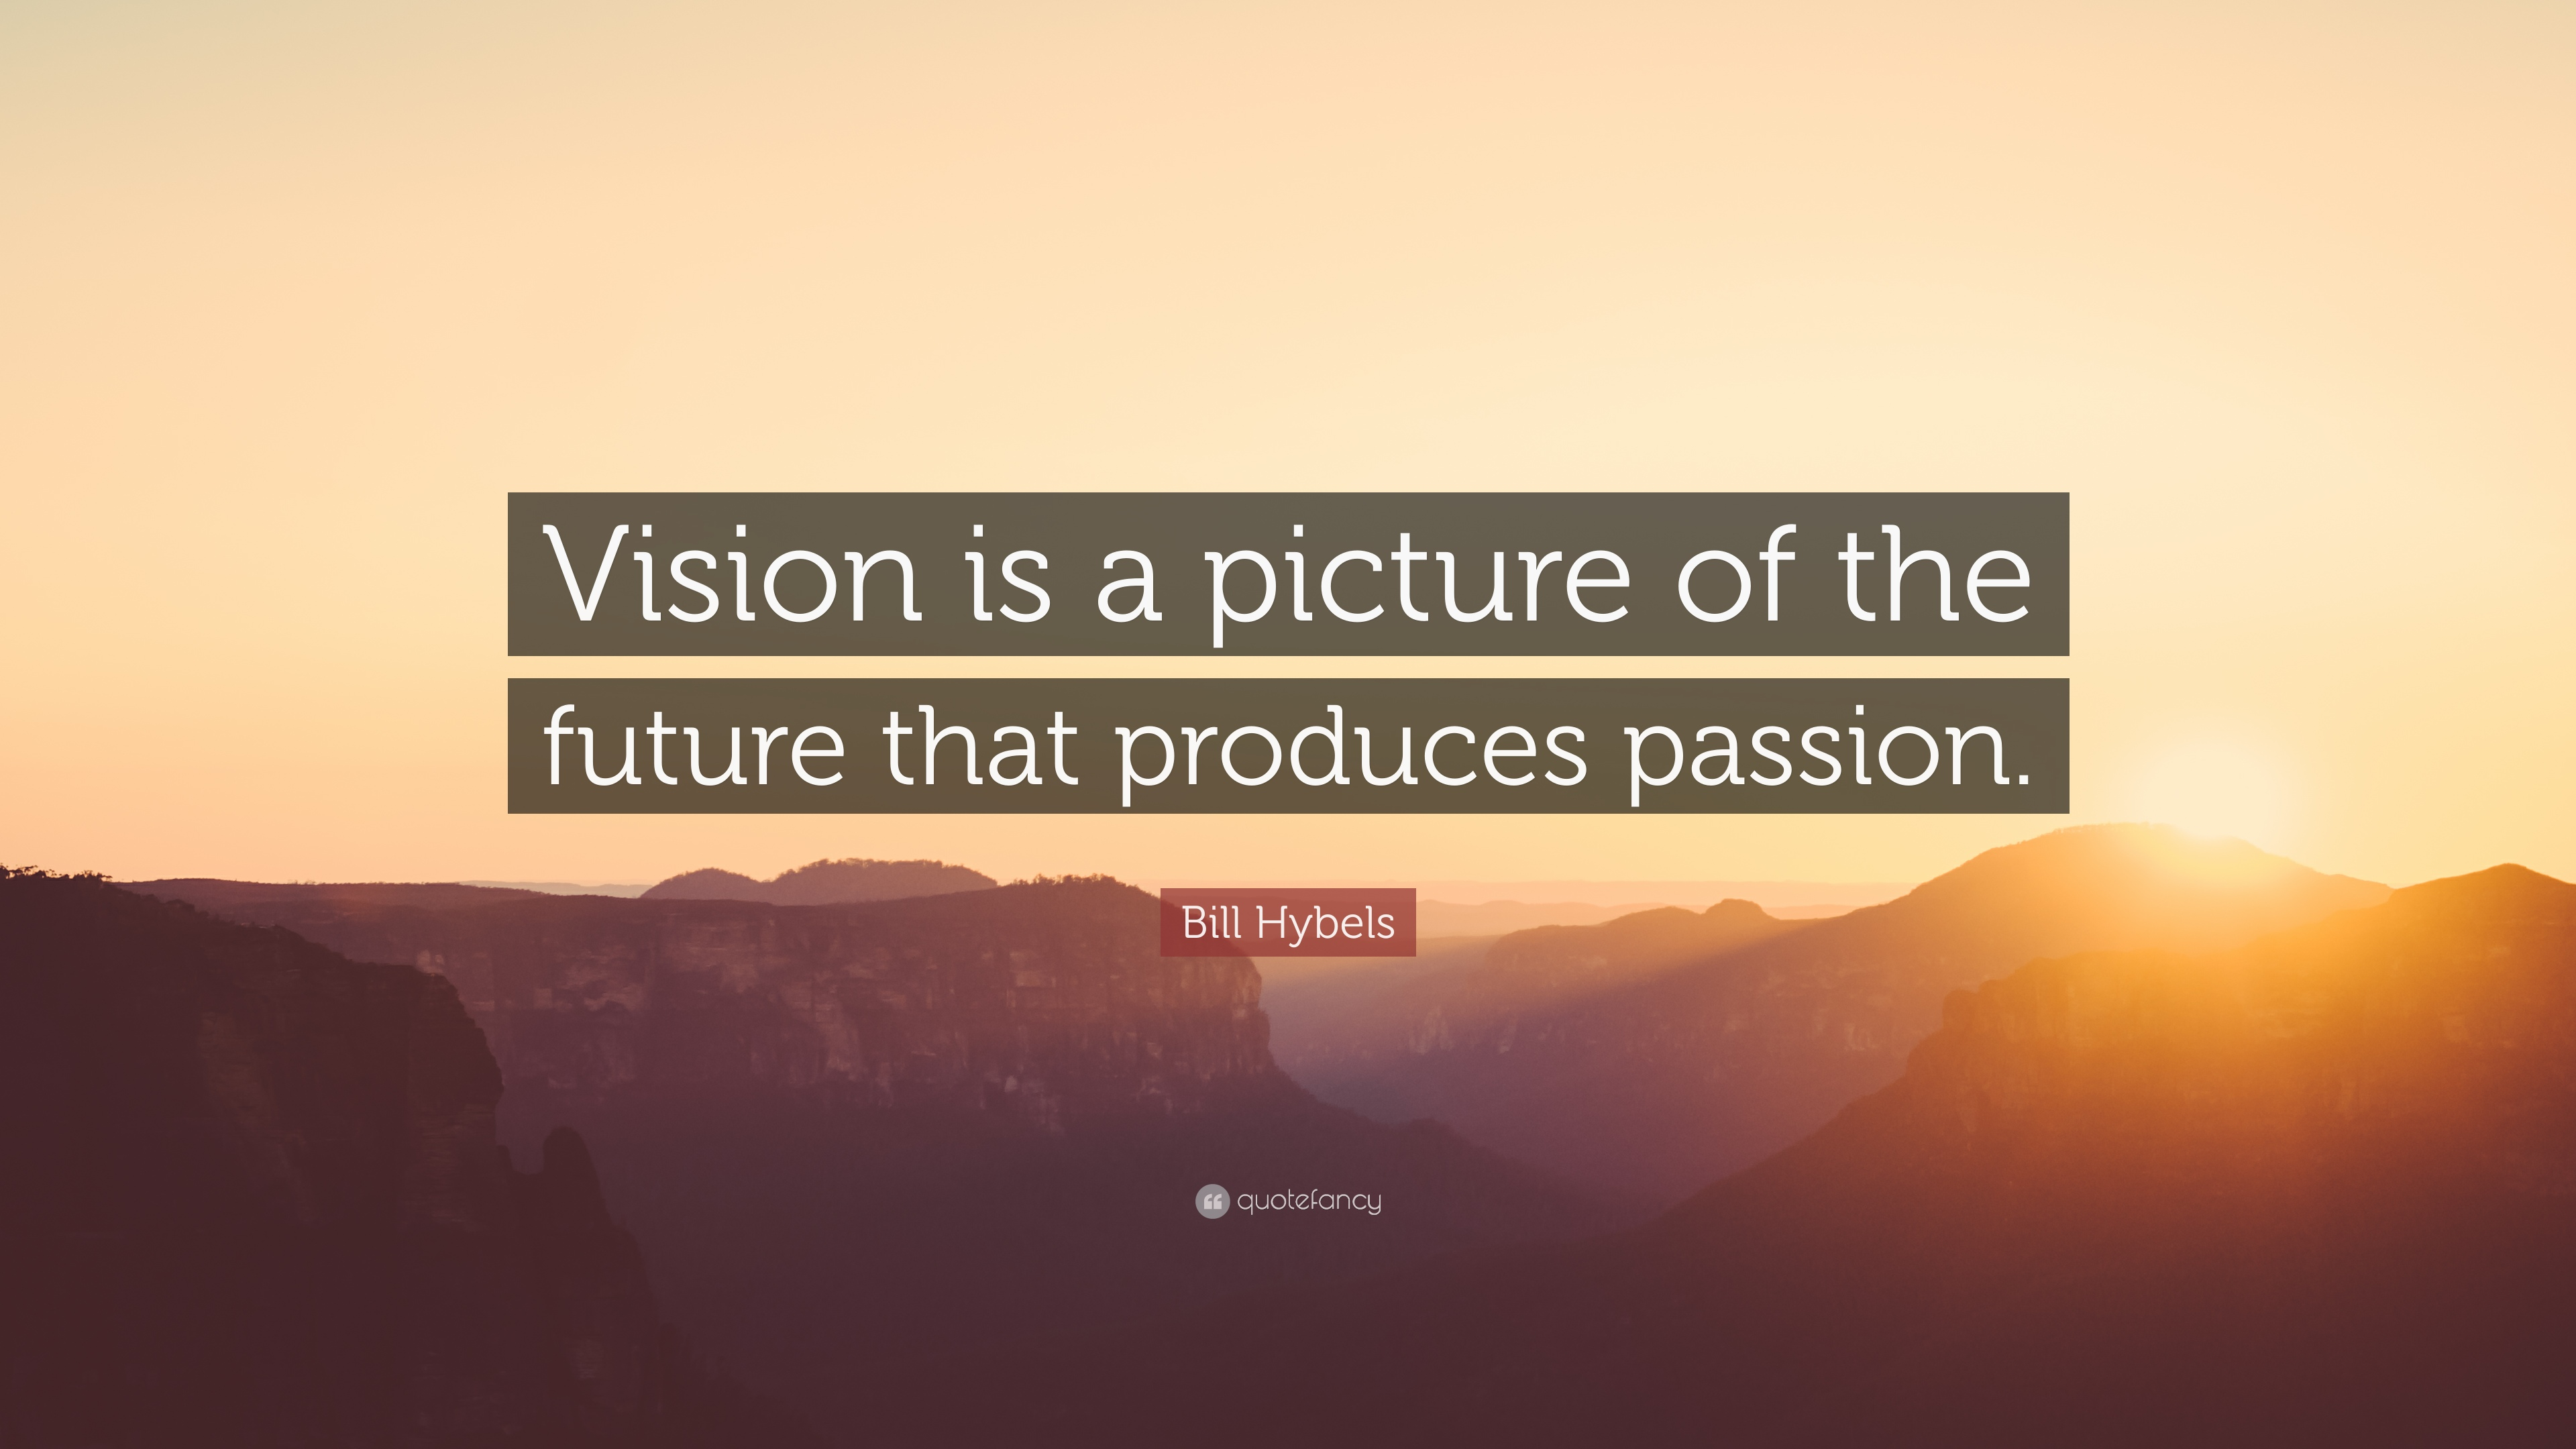 Quotes About Vision Vision Quotes 40 Wallpapers  Quotefancy